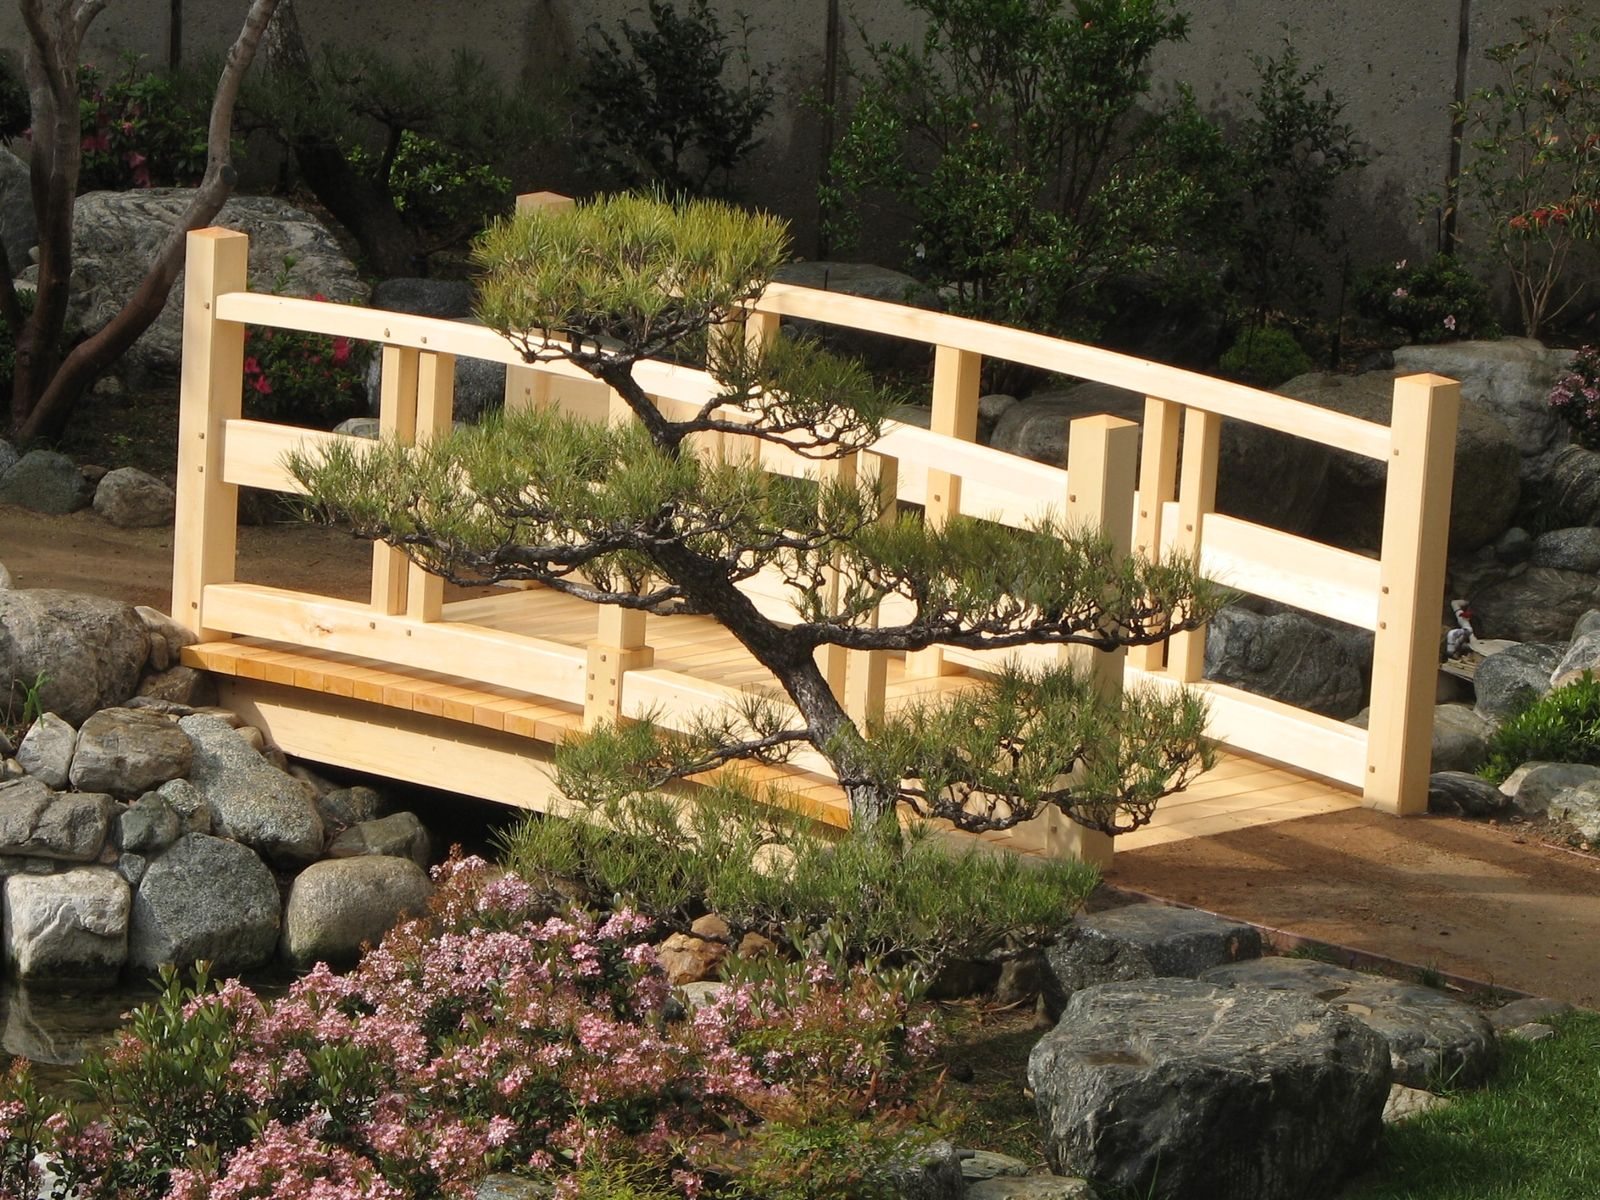 japanese outdoor furniture. Simple Japanese Japanese Outdoor Furniture Balance Enclosures And The Forms Of Nature  Combine In Serene In Japanese Outdoor Furniture